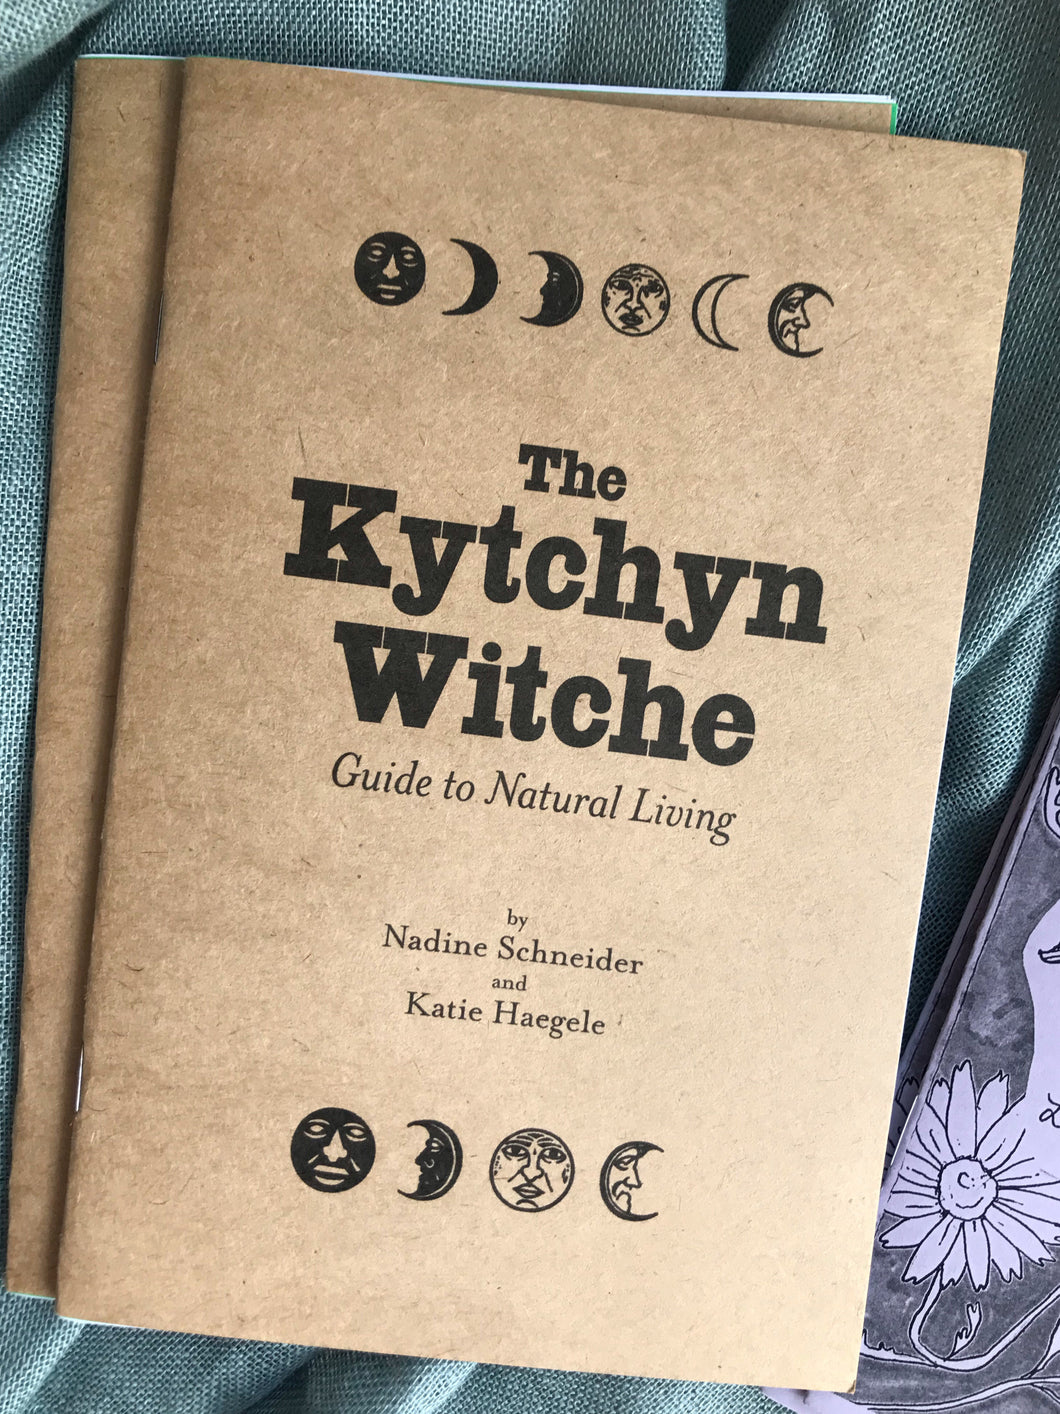 The Kytchyn Witche: Guide to Natural Living